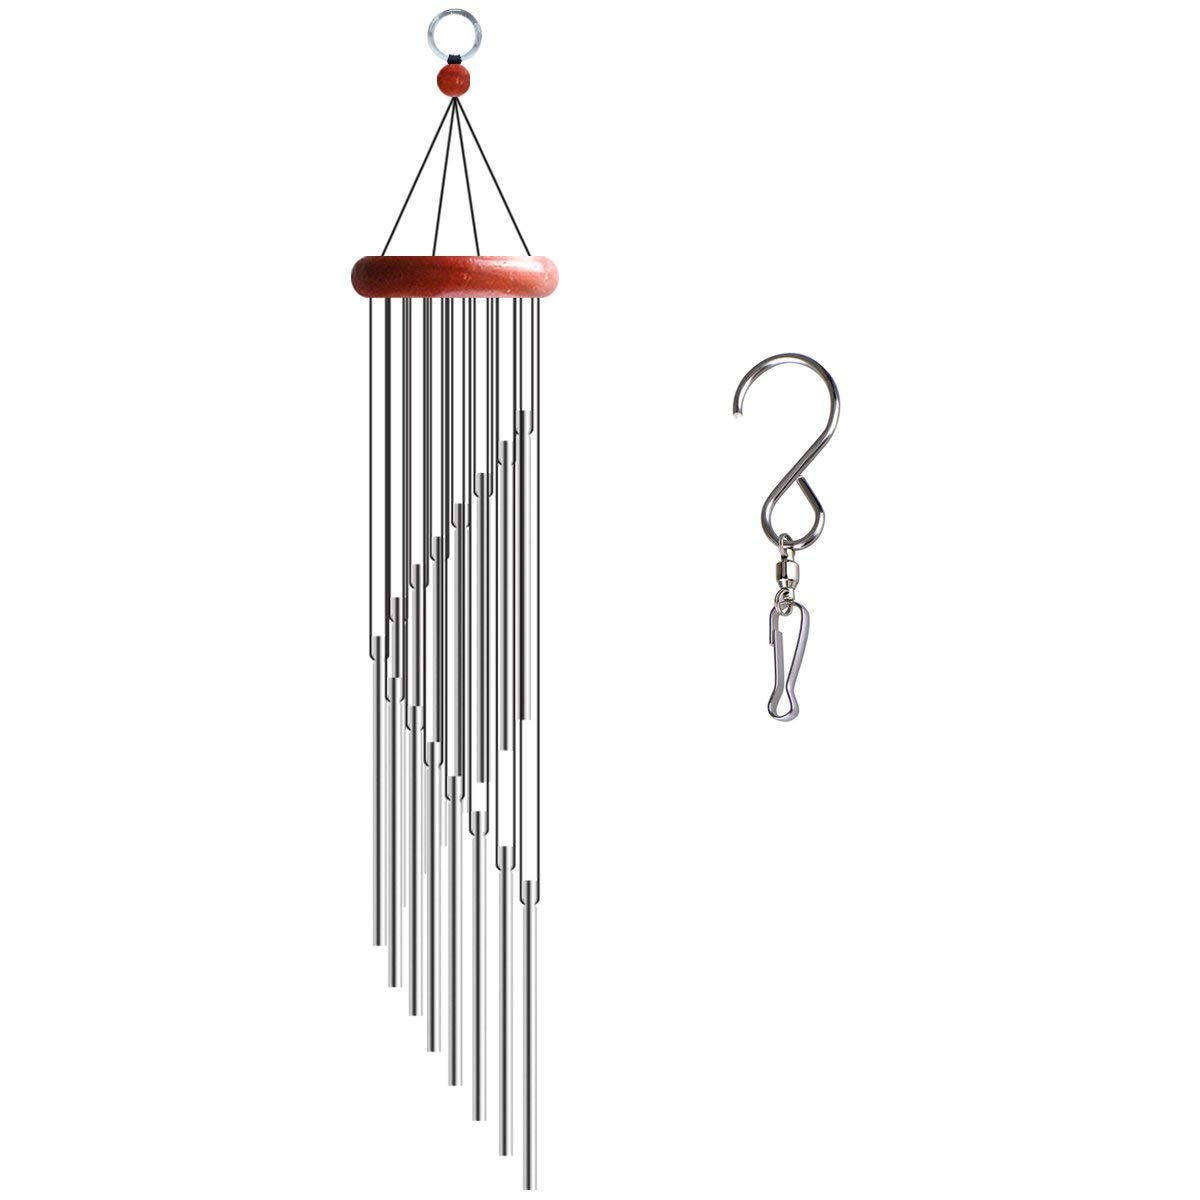 Chasgo Mini Wind Chime Outdoor Indoor-Amazing Grace Memorial Wind Chime Deep Tone with Melody Bells Sounding Musical, Silver